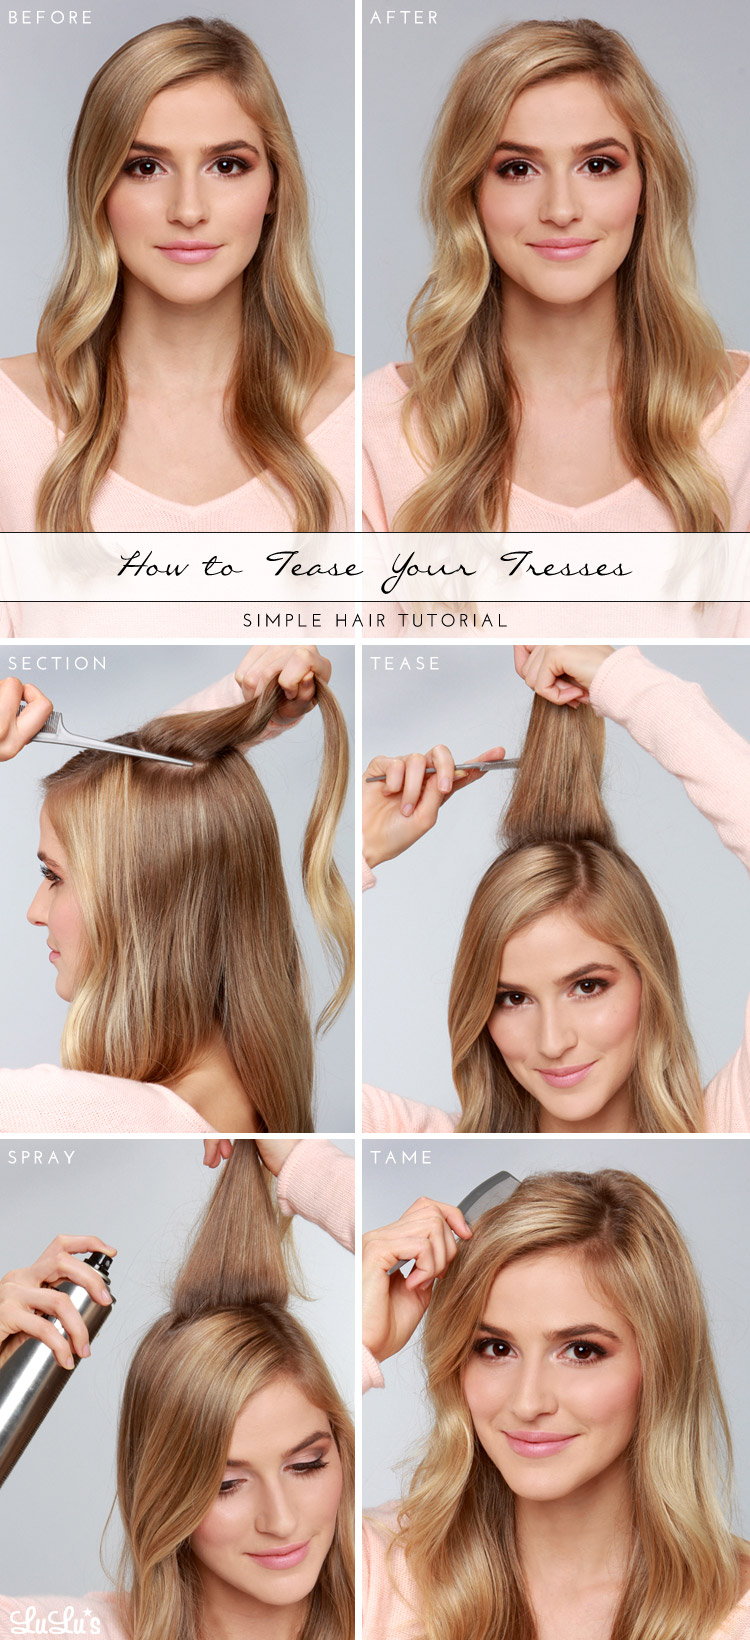 Lulus How-To: Tease Your Tresses Hair Tutorial